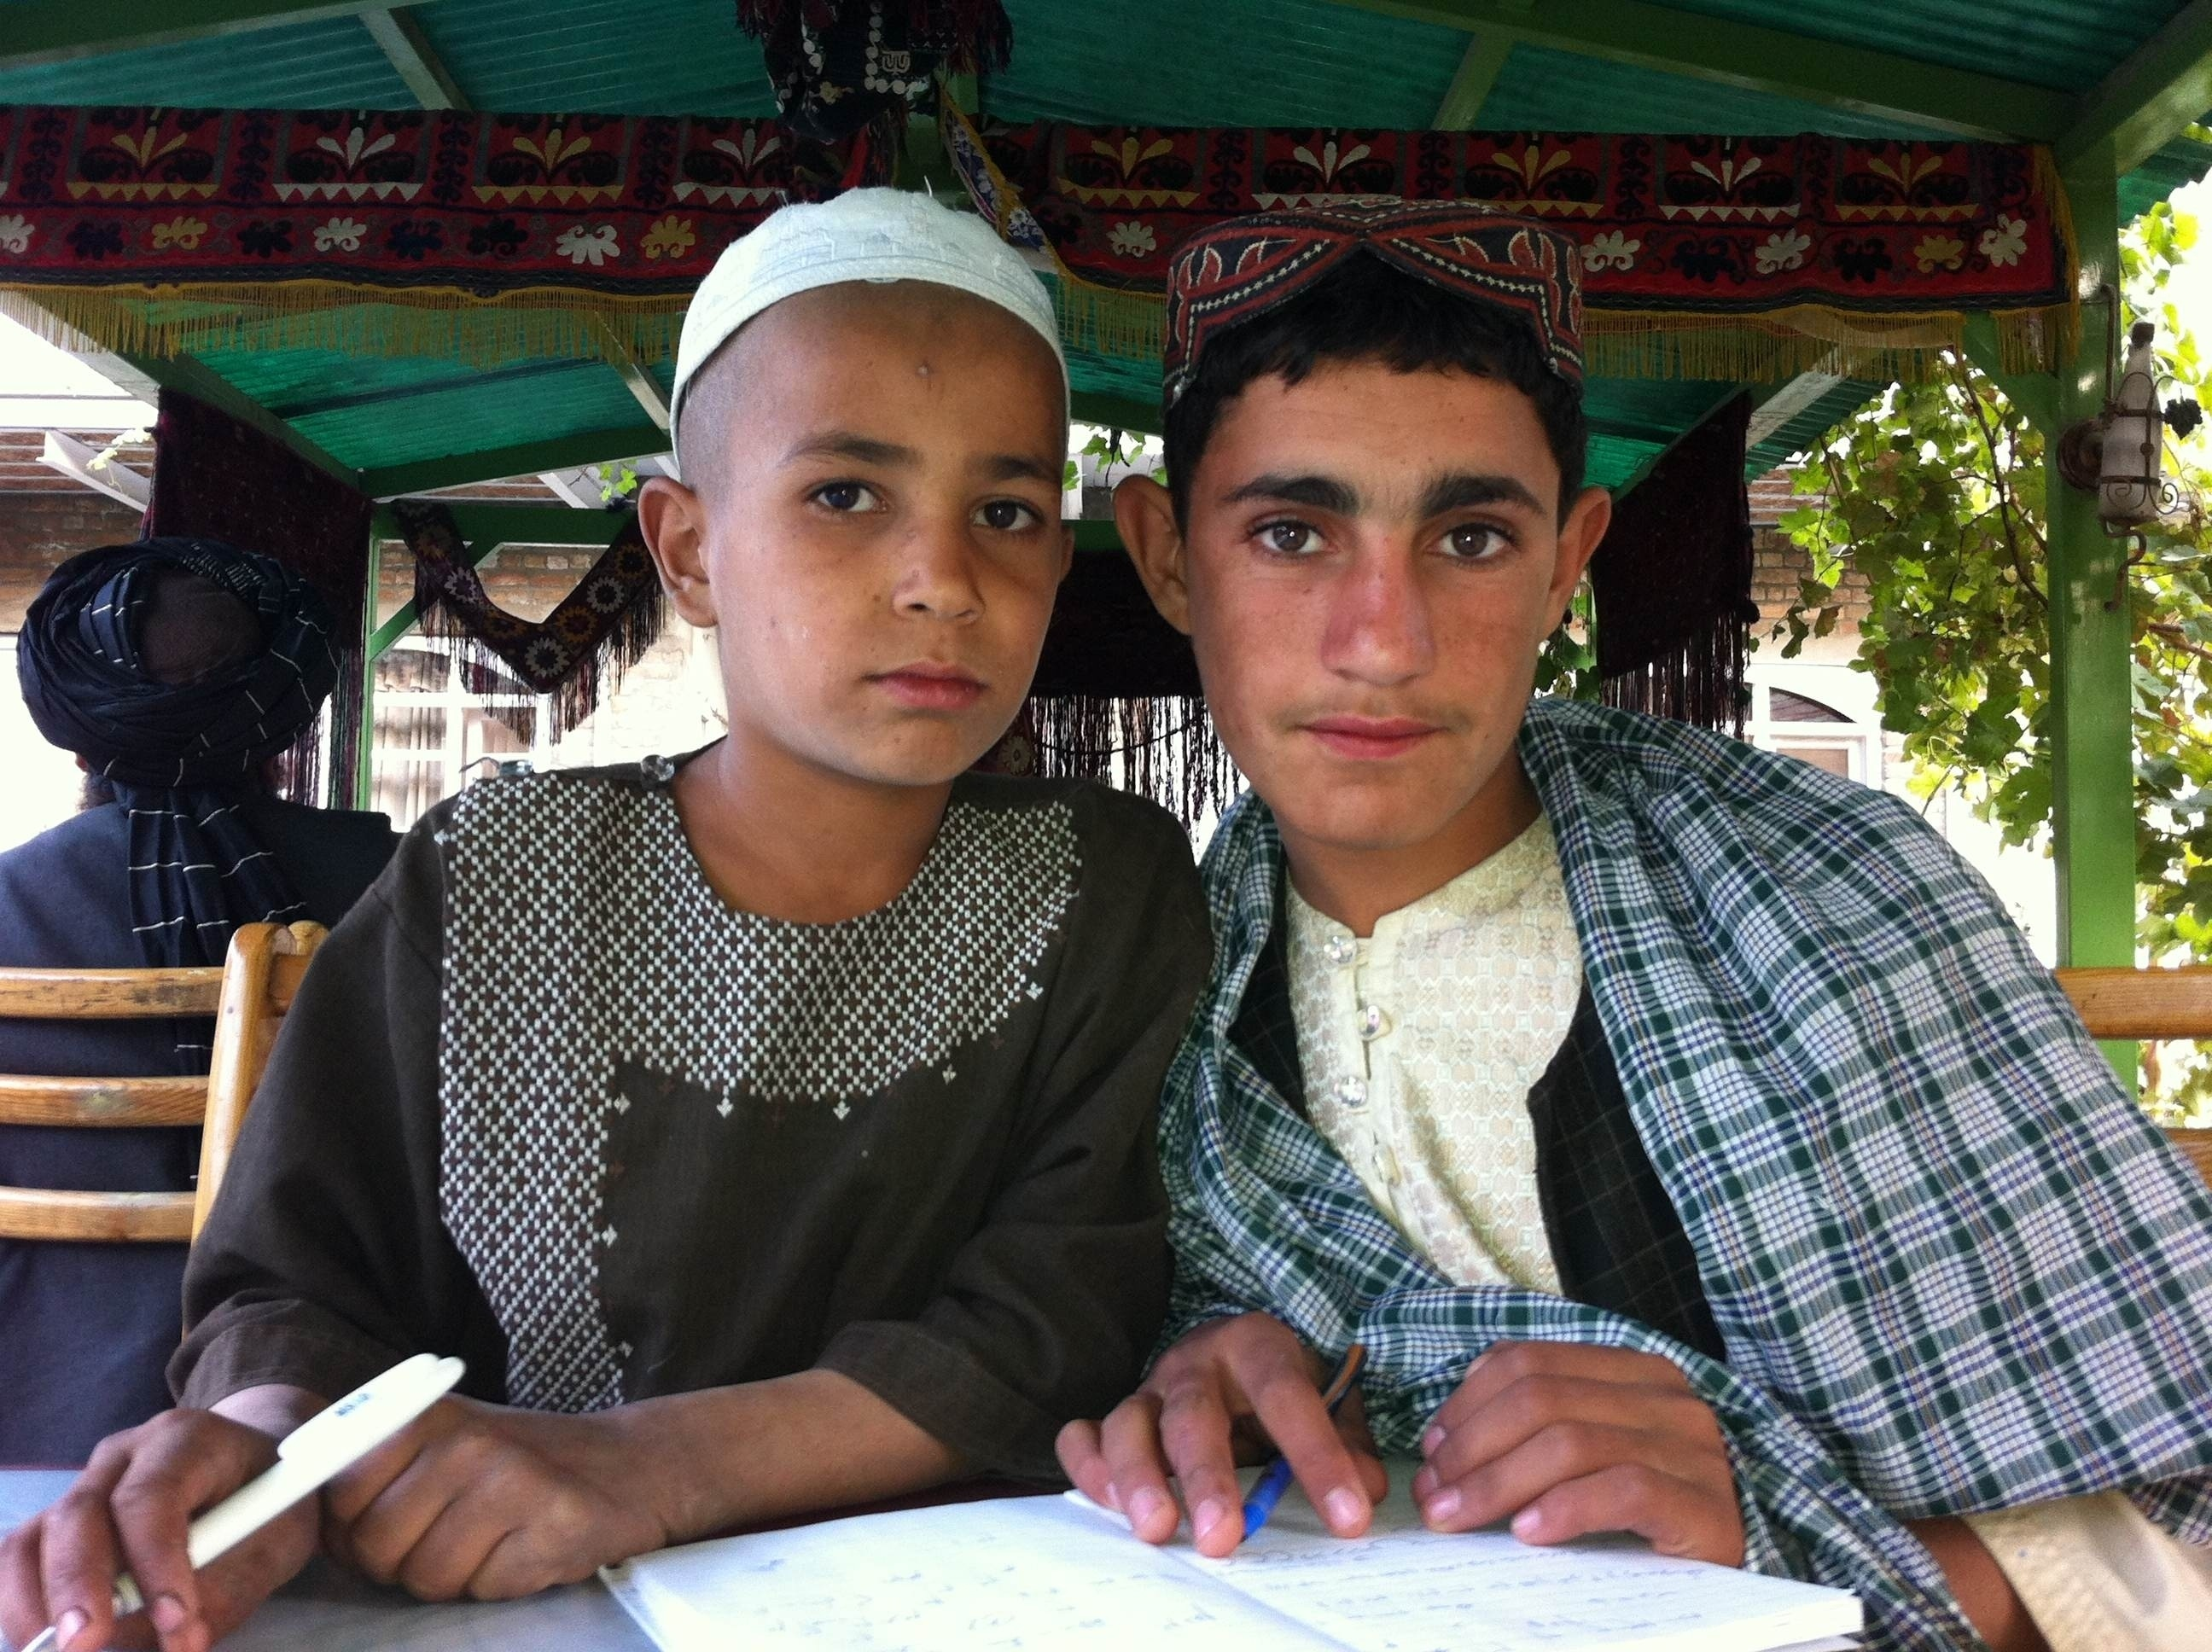 Fall, 2012 Mamoon Durrani photograph of two boys (Hekmatullah, 10, and Rafiullah, 15) who witnessed the Sunday, March 11, 2012 massacre in separate villages in Panjwai district, Kandahar province, Afghanistan